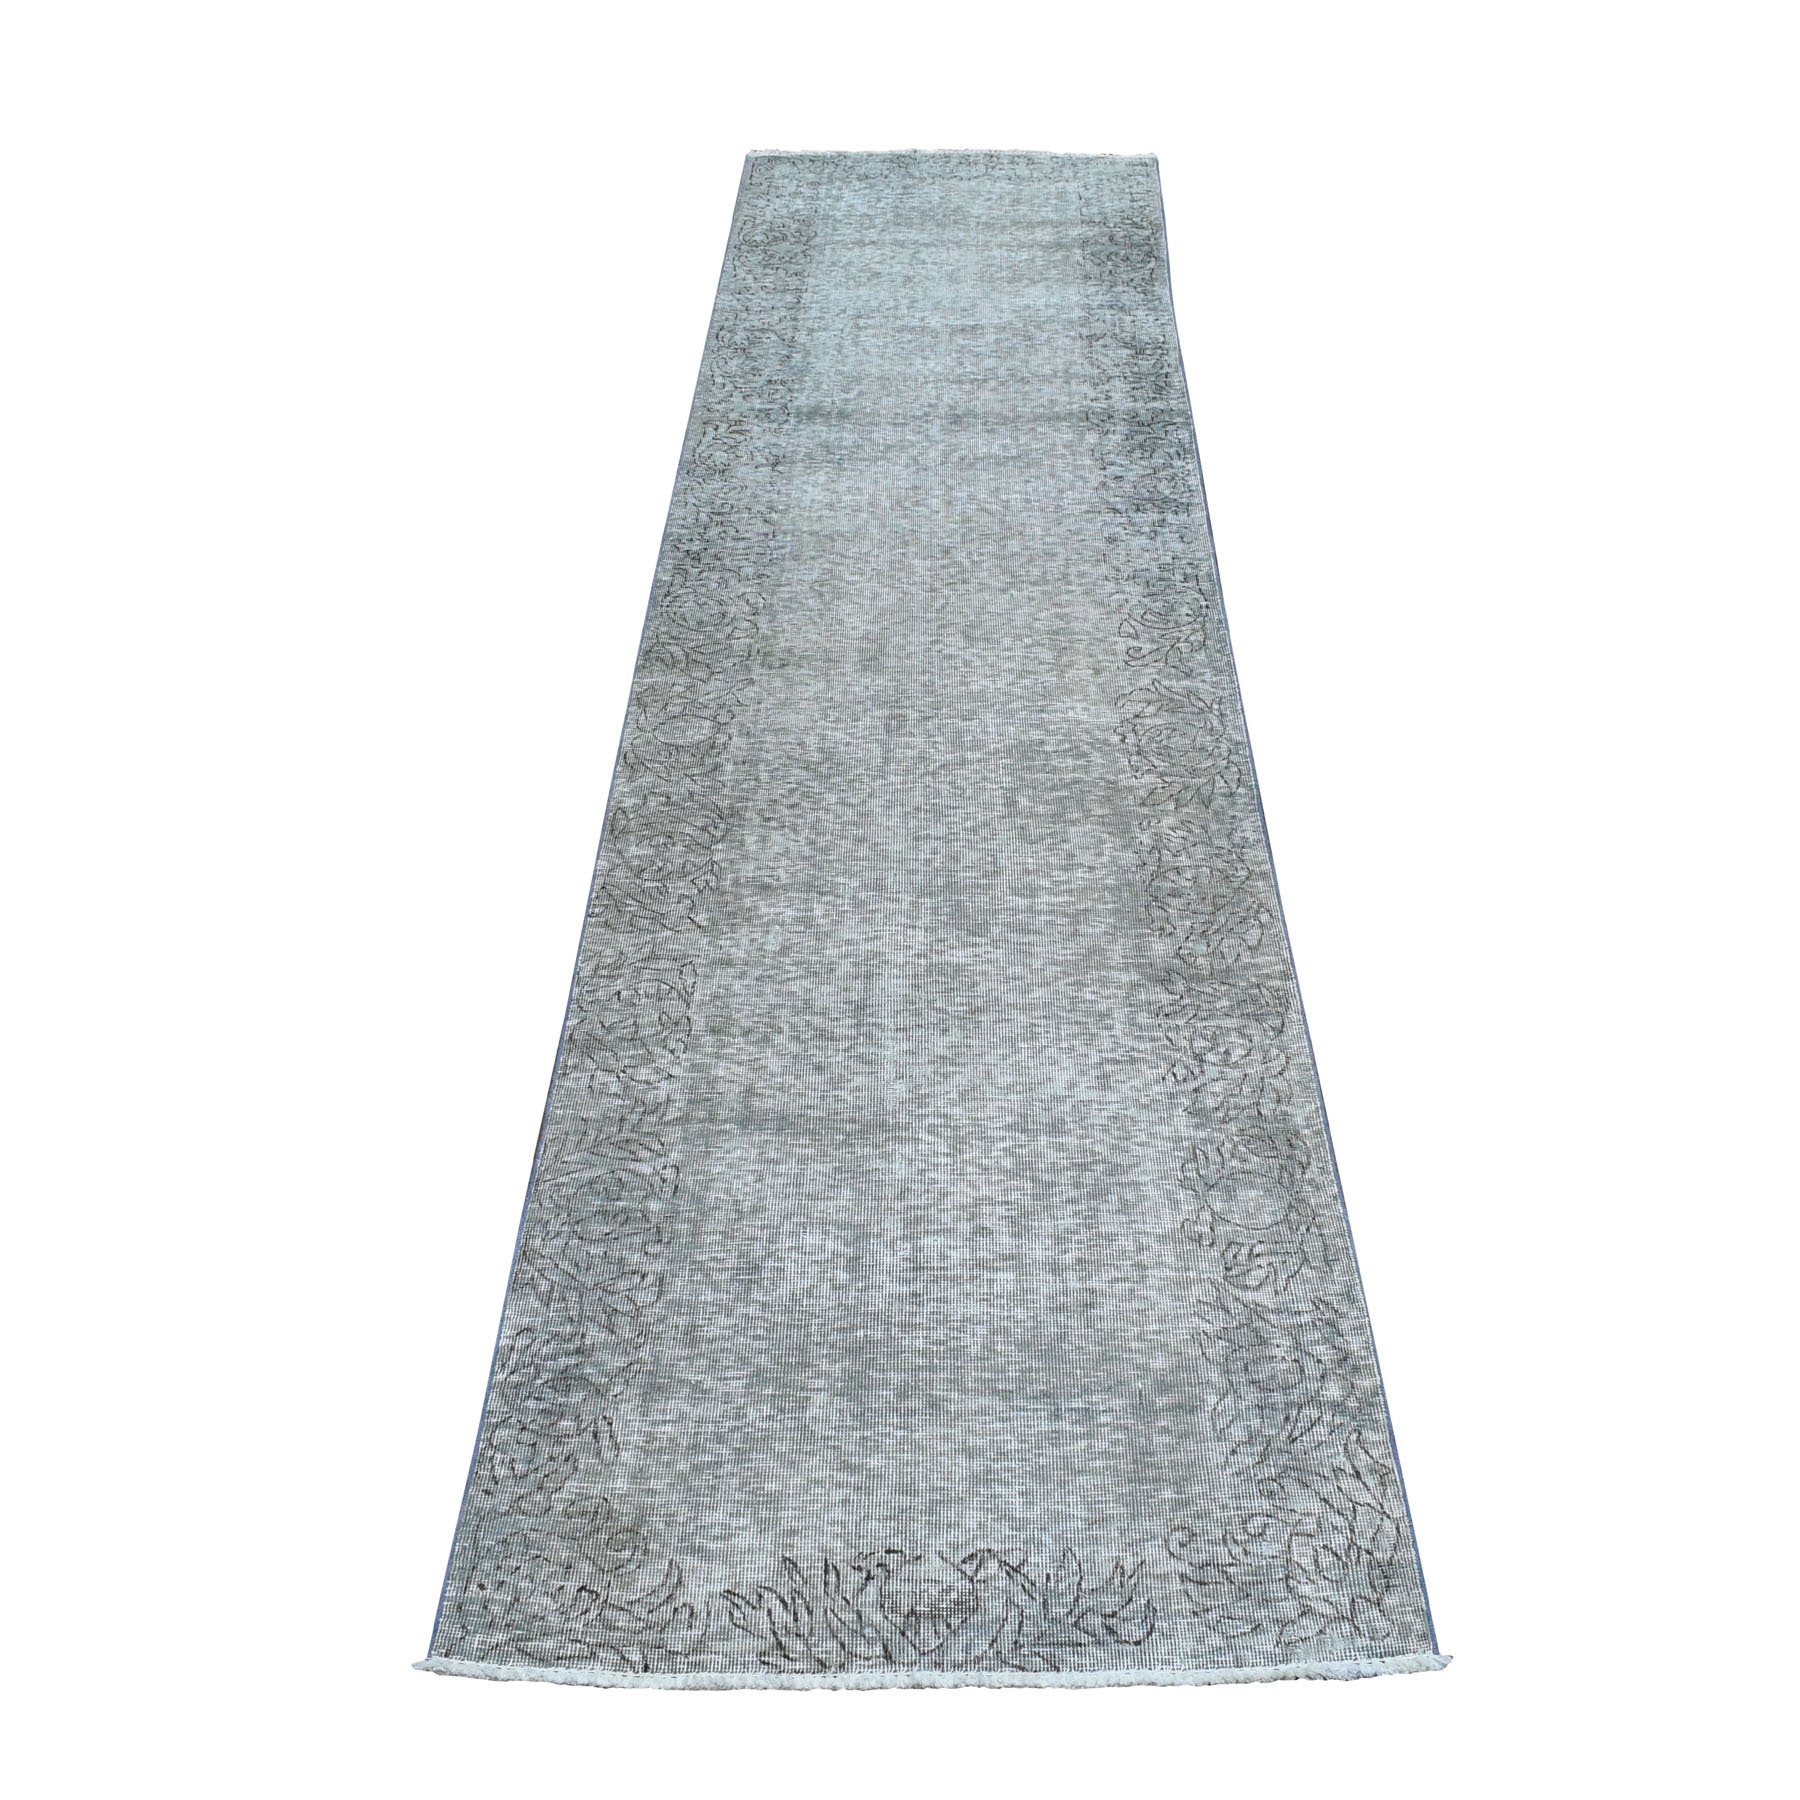 Fetneh Collection And Vintage Overdyed Collection Hand Knotted Grey Rug No: 01104272